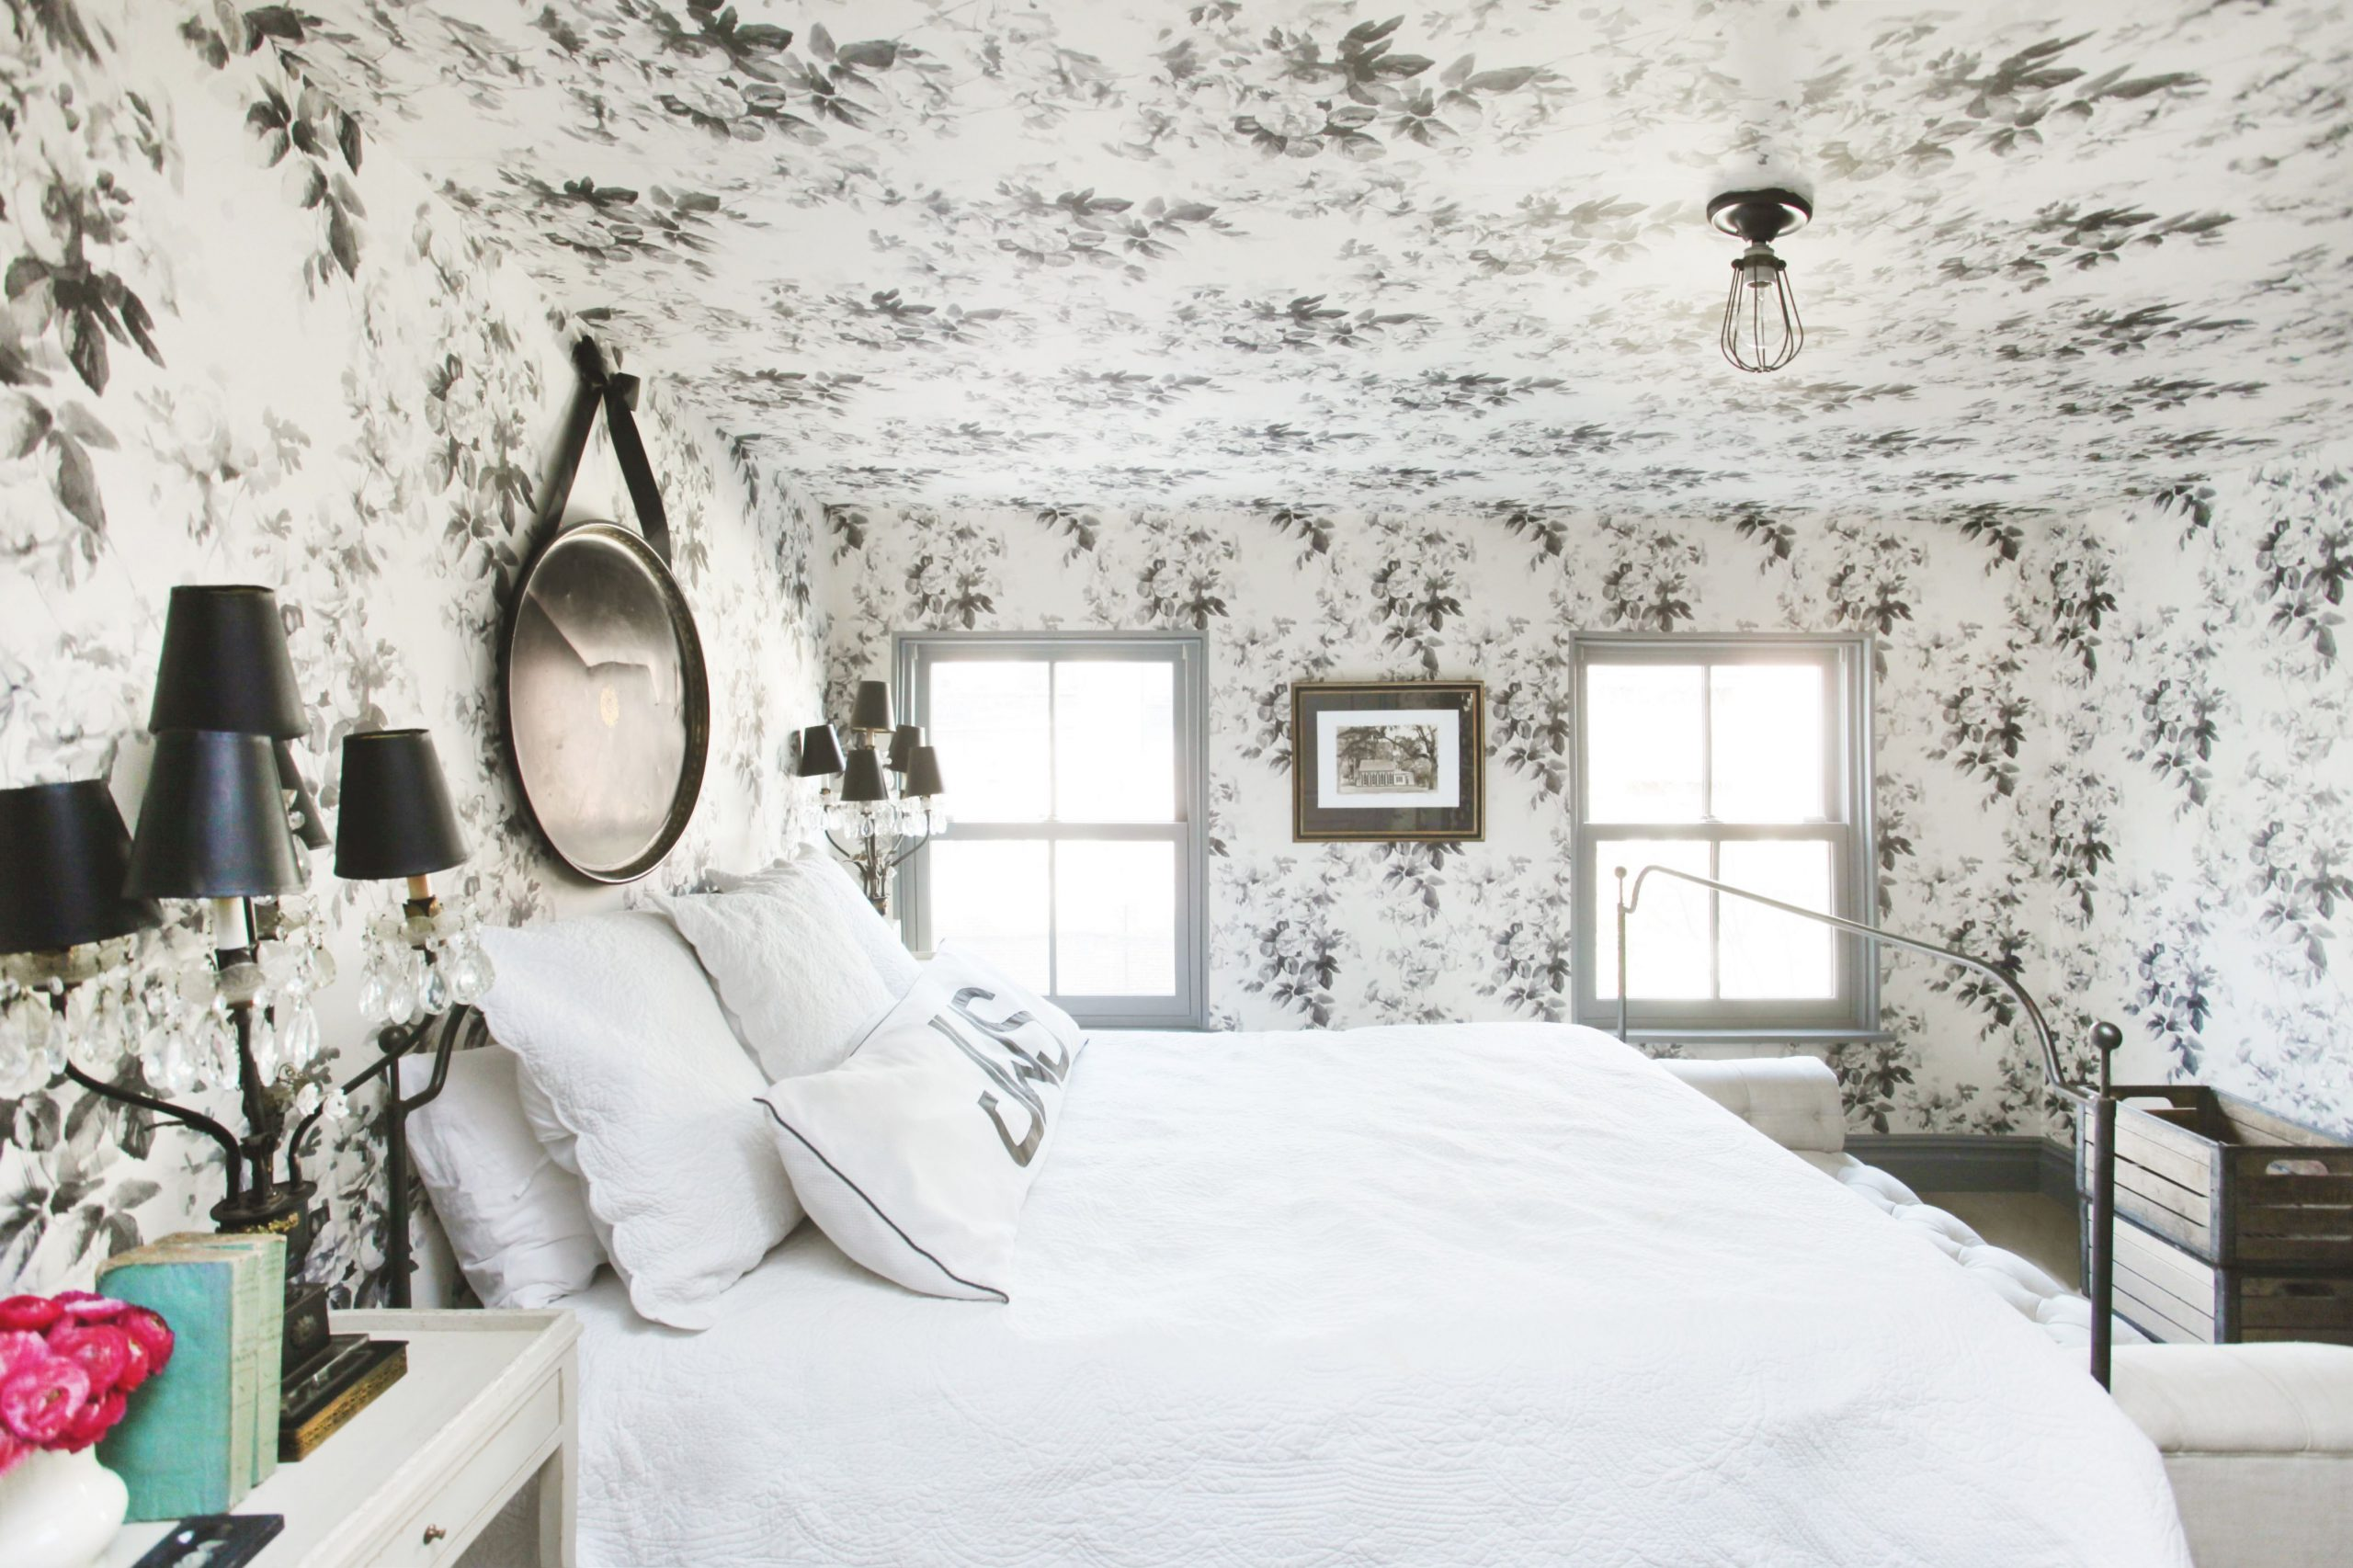 15 Master Bedroom Decorating Ideas And Design Inspiration with Beautiful Master Bedroom Wall Decor Ideas